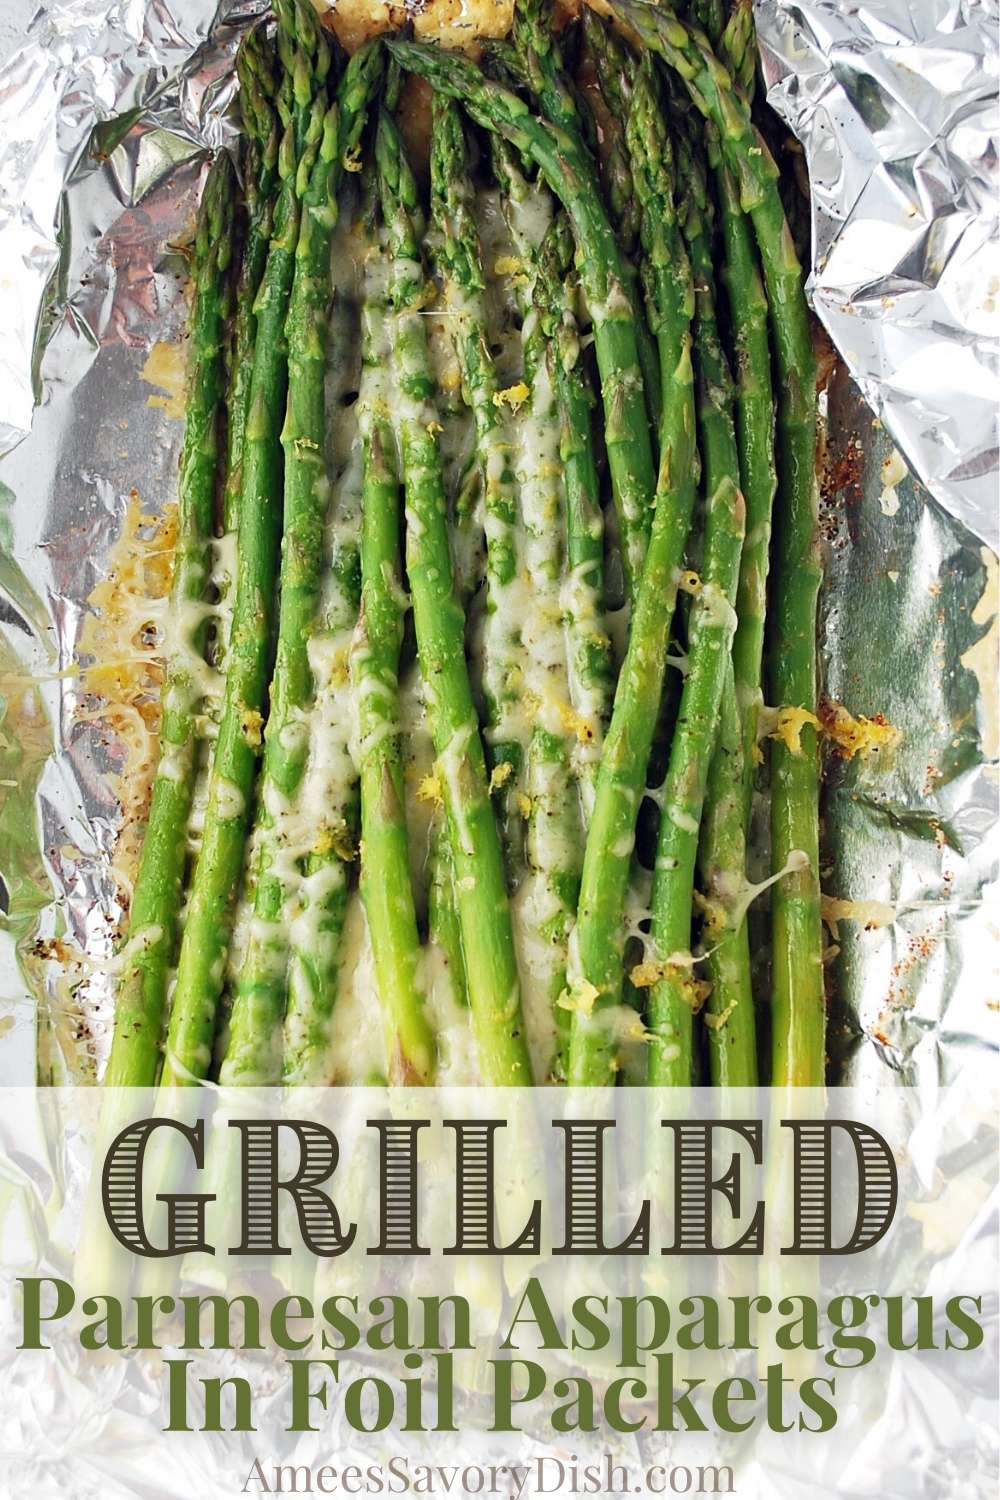 A recipe for fresh grilled parmesan asparagus in foil packets made with parmesan cheese, lemon zest, and olive oil. Easy and delicious! via @Ameessavorydish